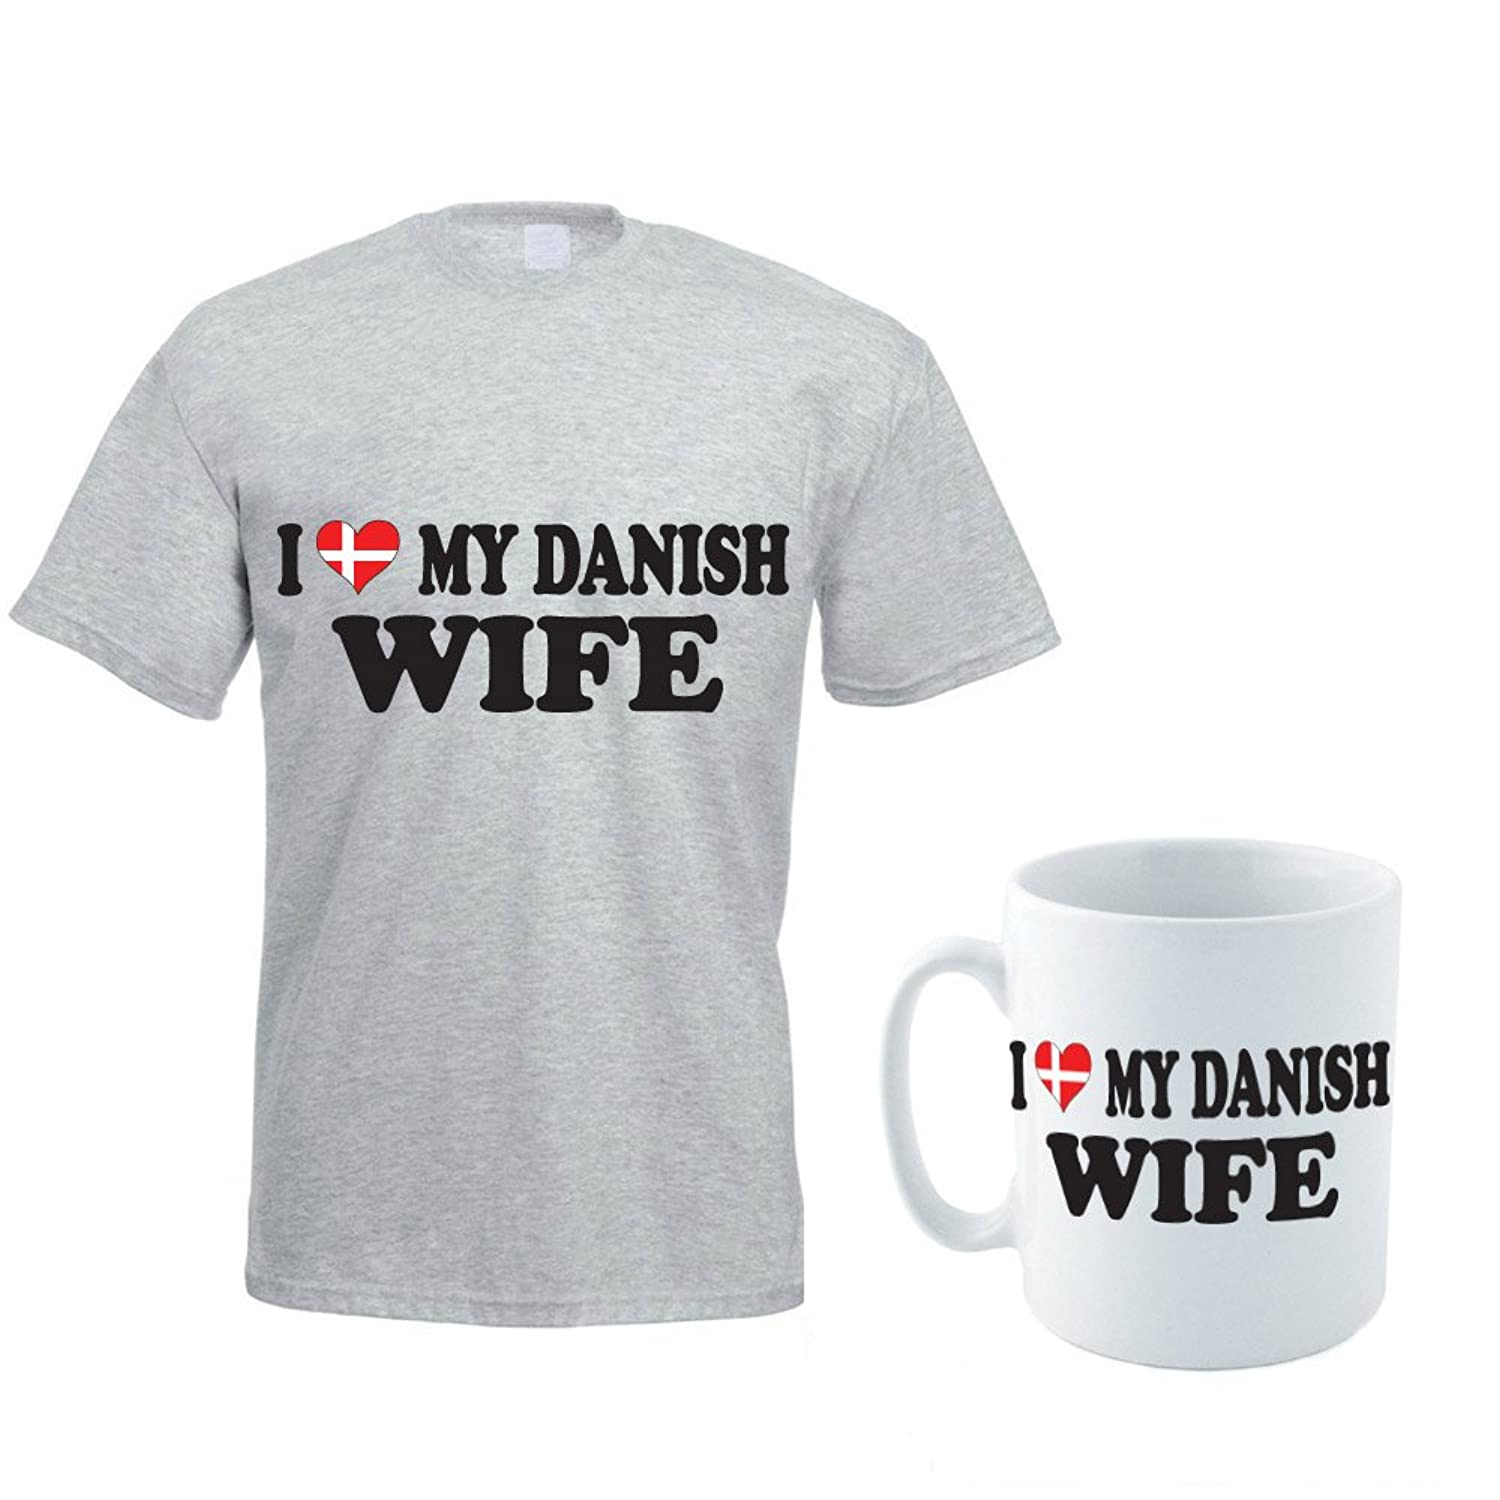 I LOVE MY DANISH WIFE - Denmark / Europe / Valentine's Day / Novelty Themed Men's T-Shirt and Ceramic Mug Set